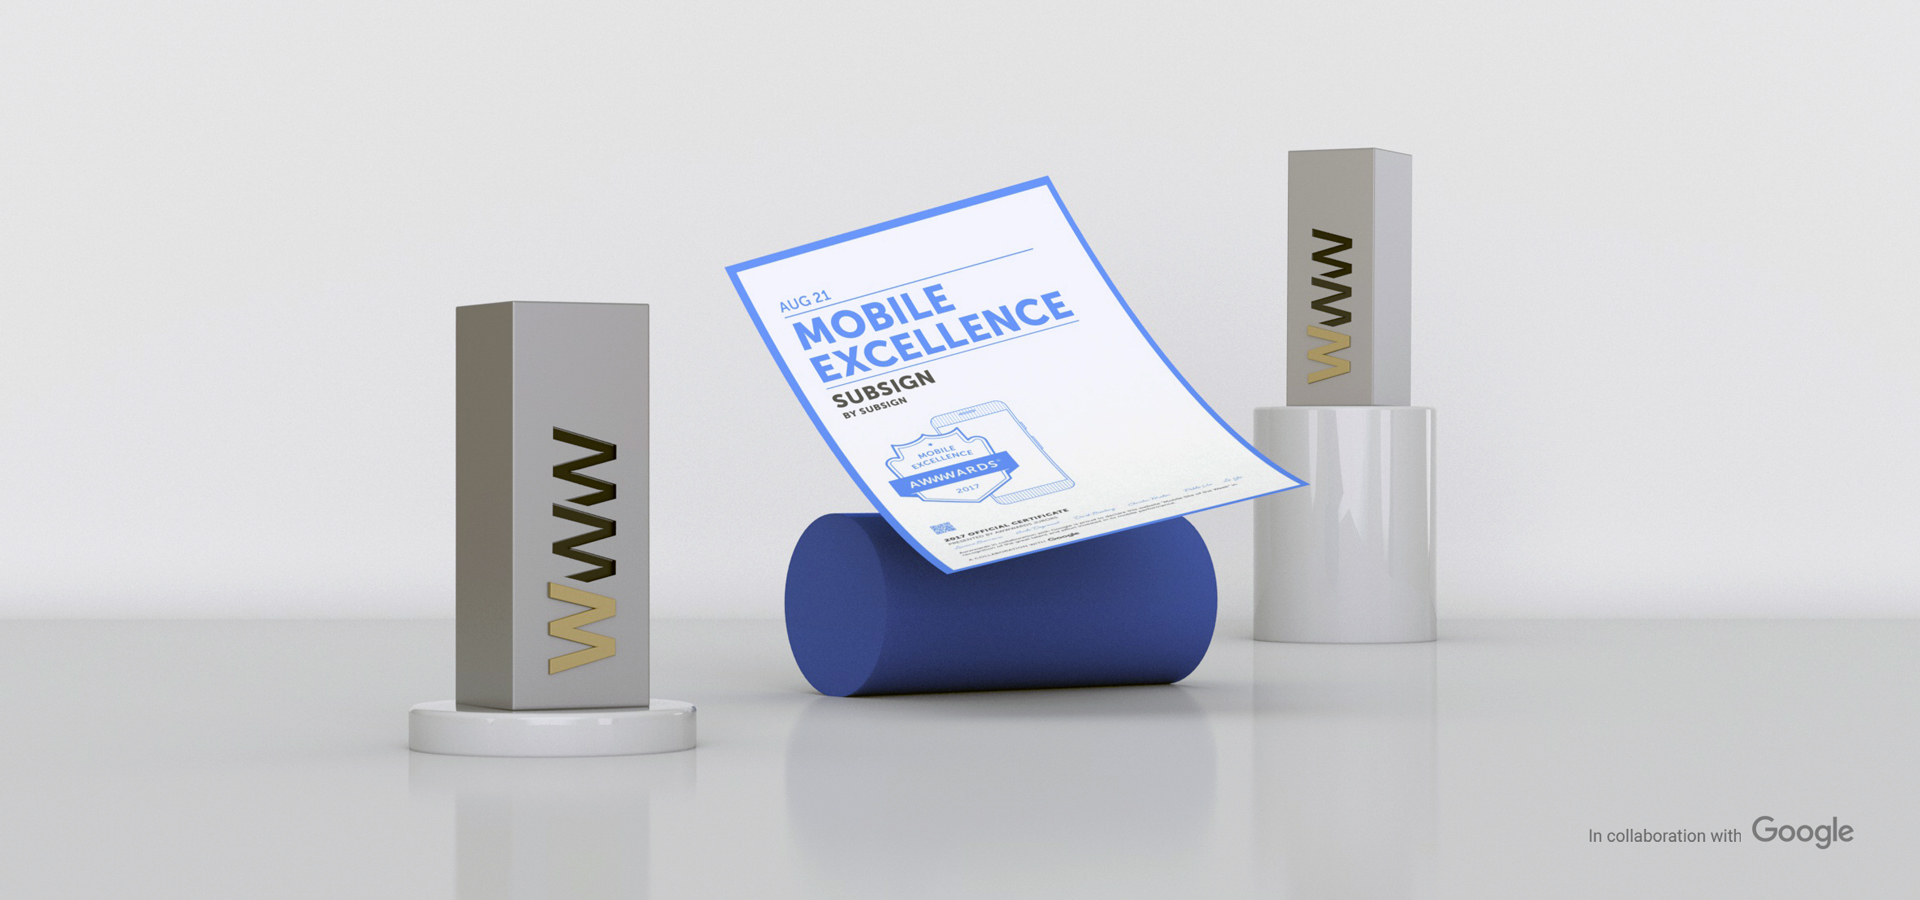 Google and Awwwards Present the Mobile Excellence Award